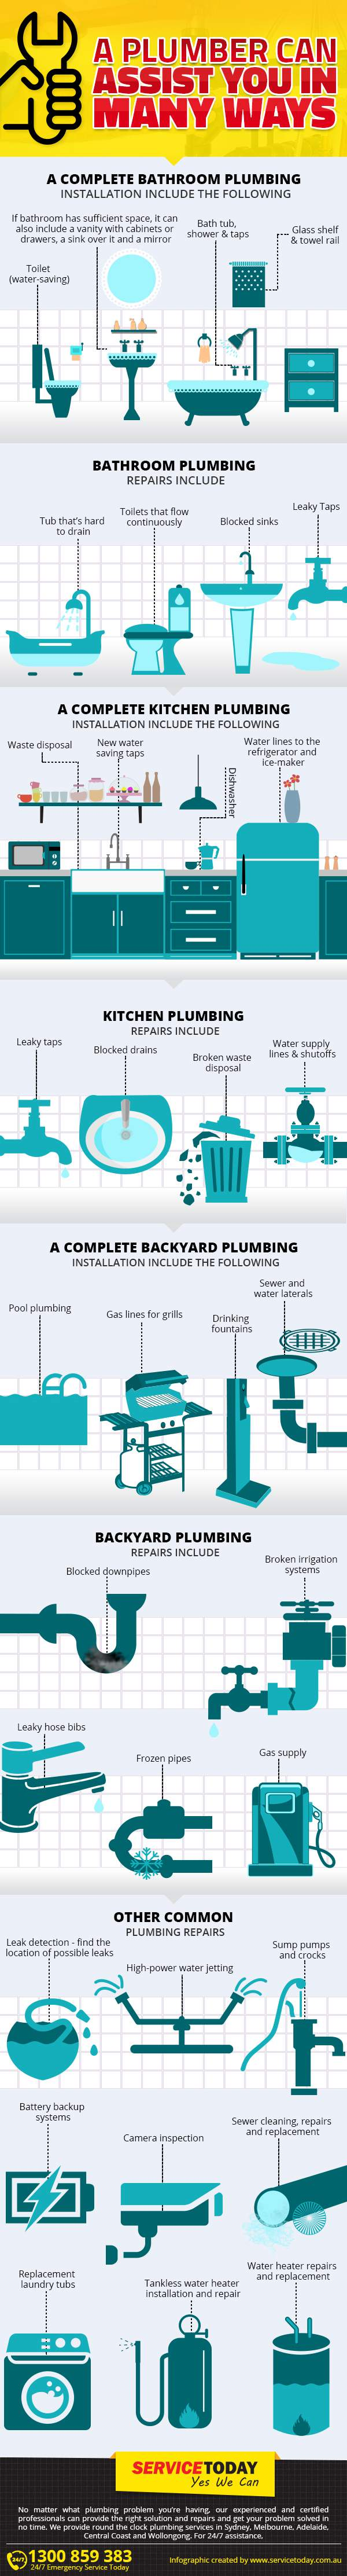 Professional Plumber Can Assist